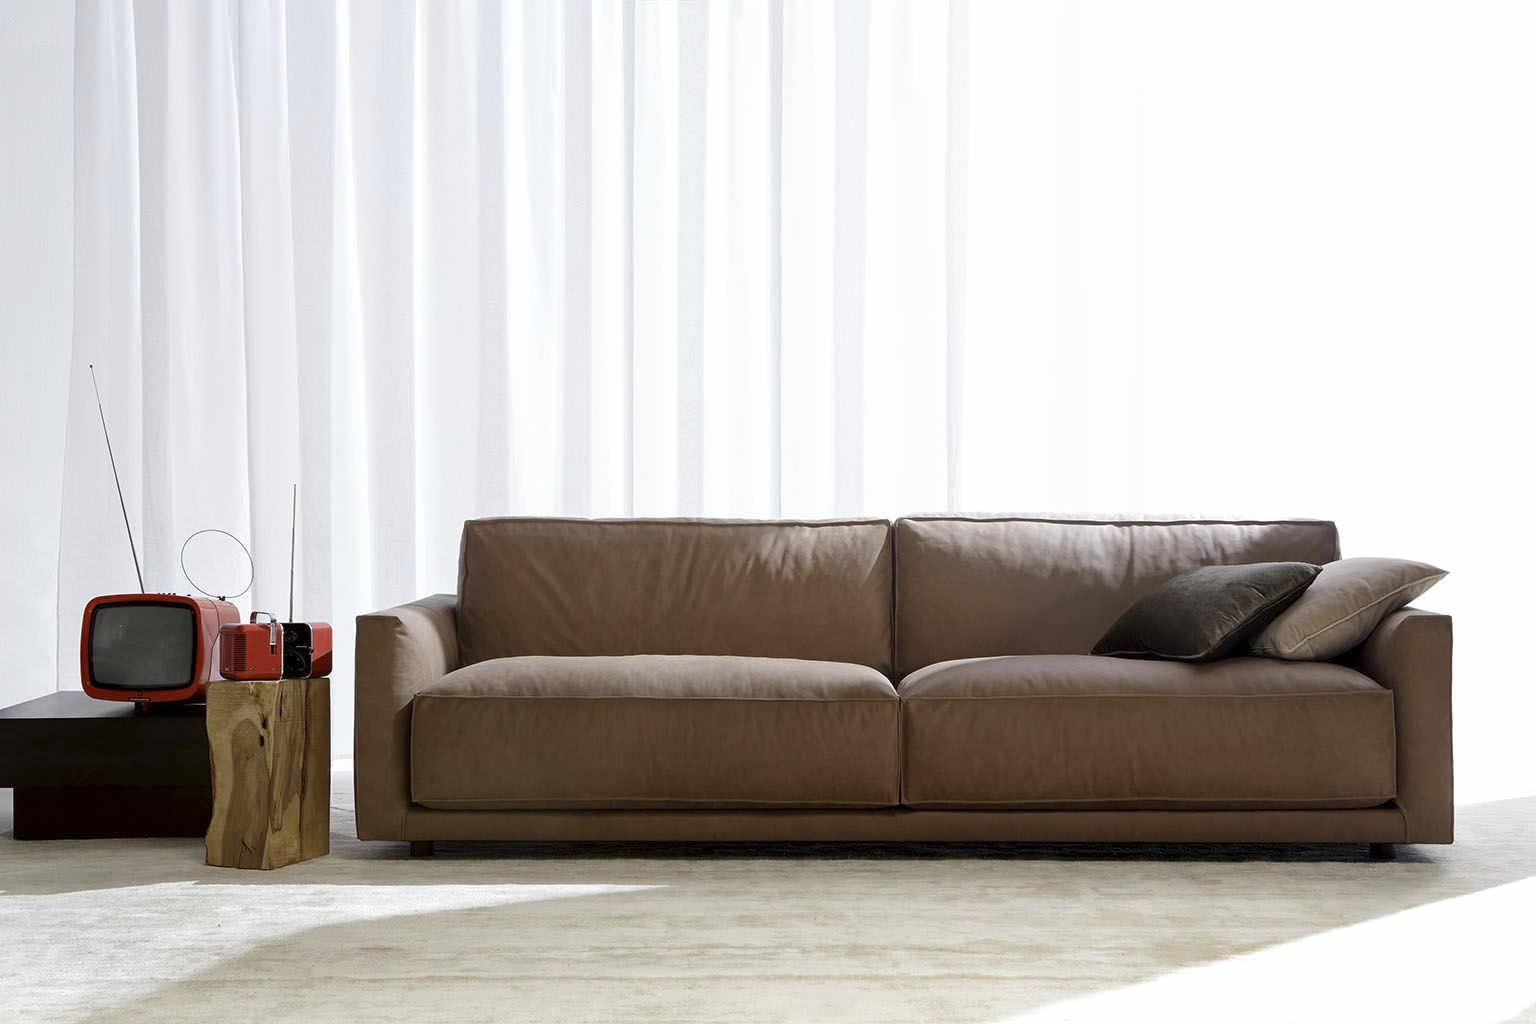 Contemporary Living Room With Brown Leather Couch – Carameloffers Regarding Contemporary Brown Leather Sofas (View 5 of 20)